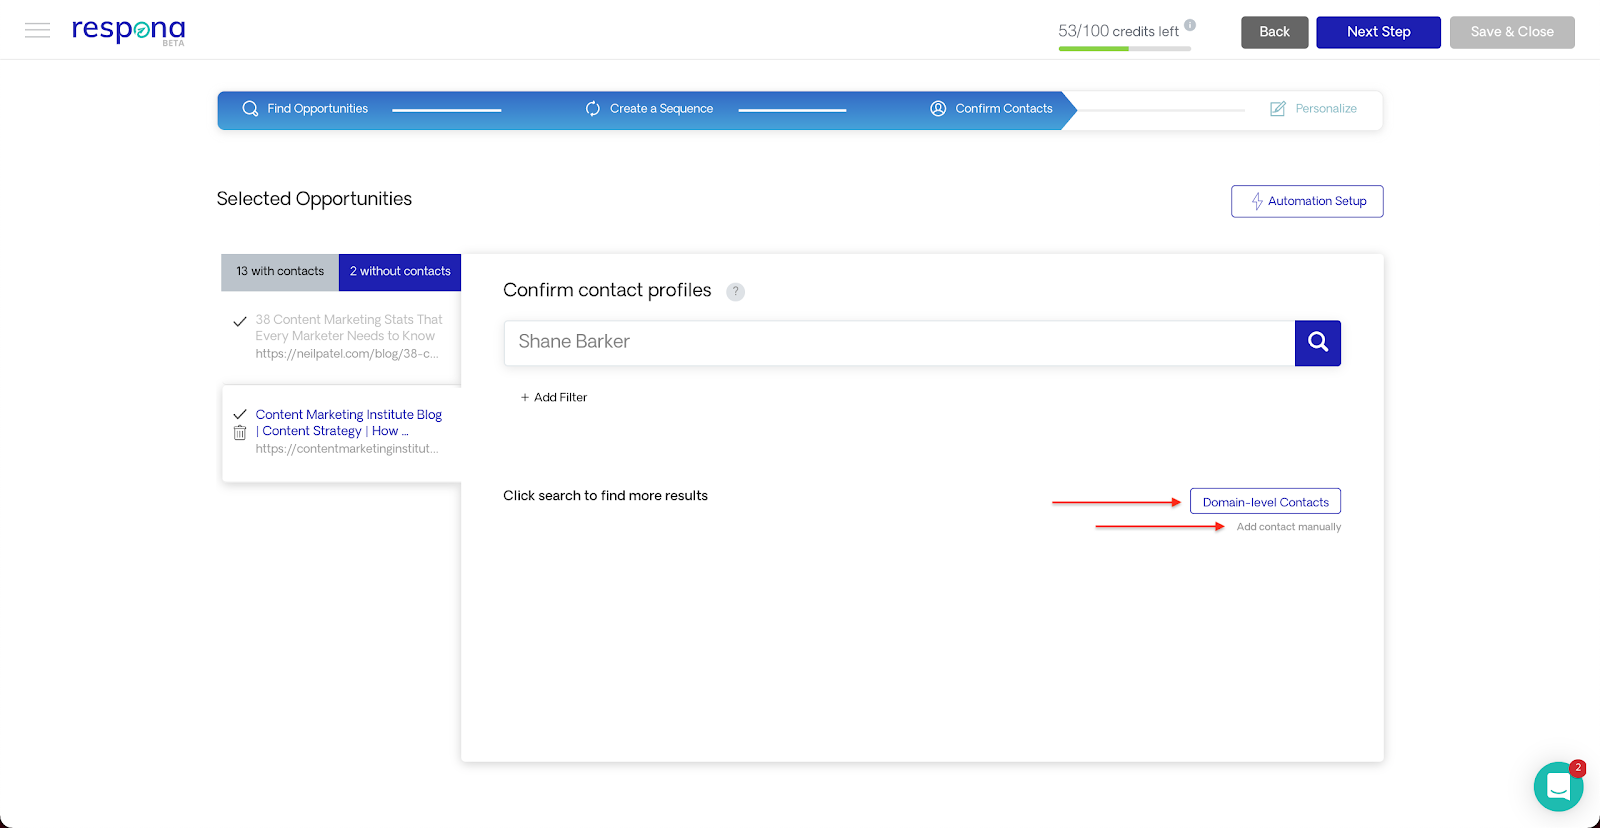 Domain level contacts and manual contact adding.